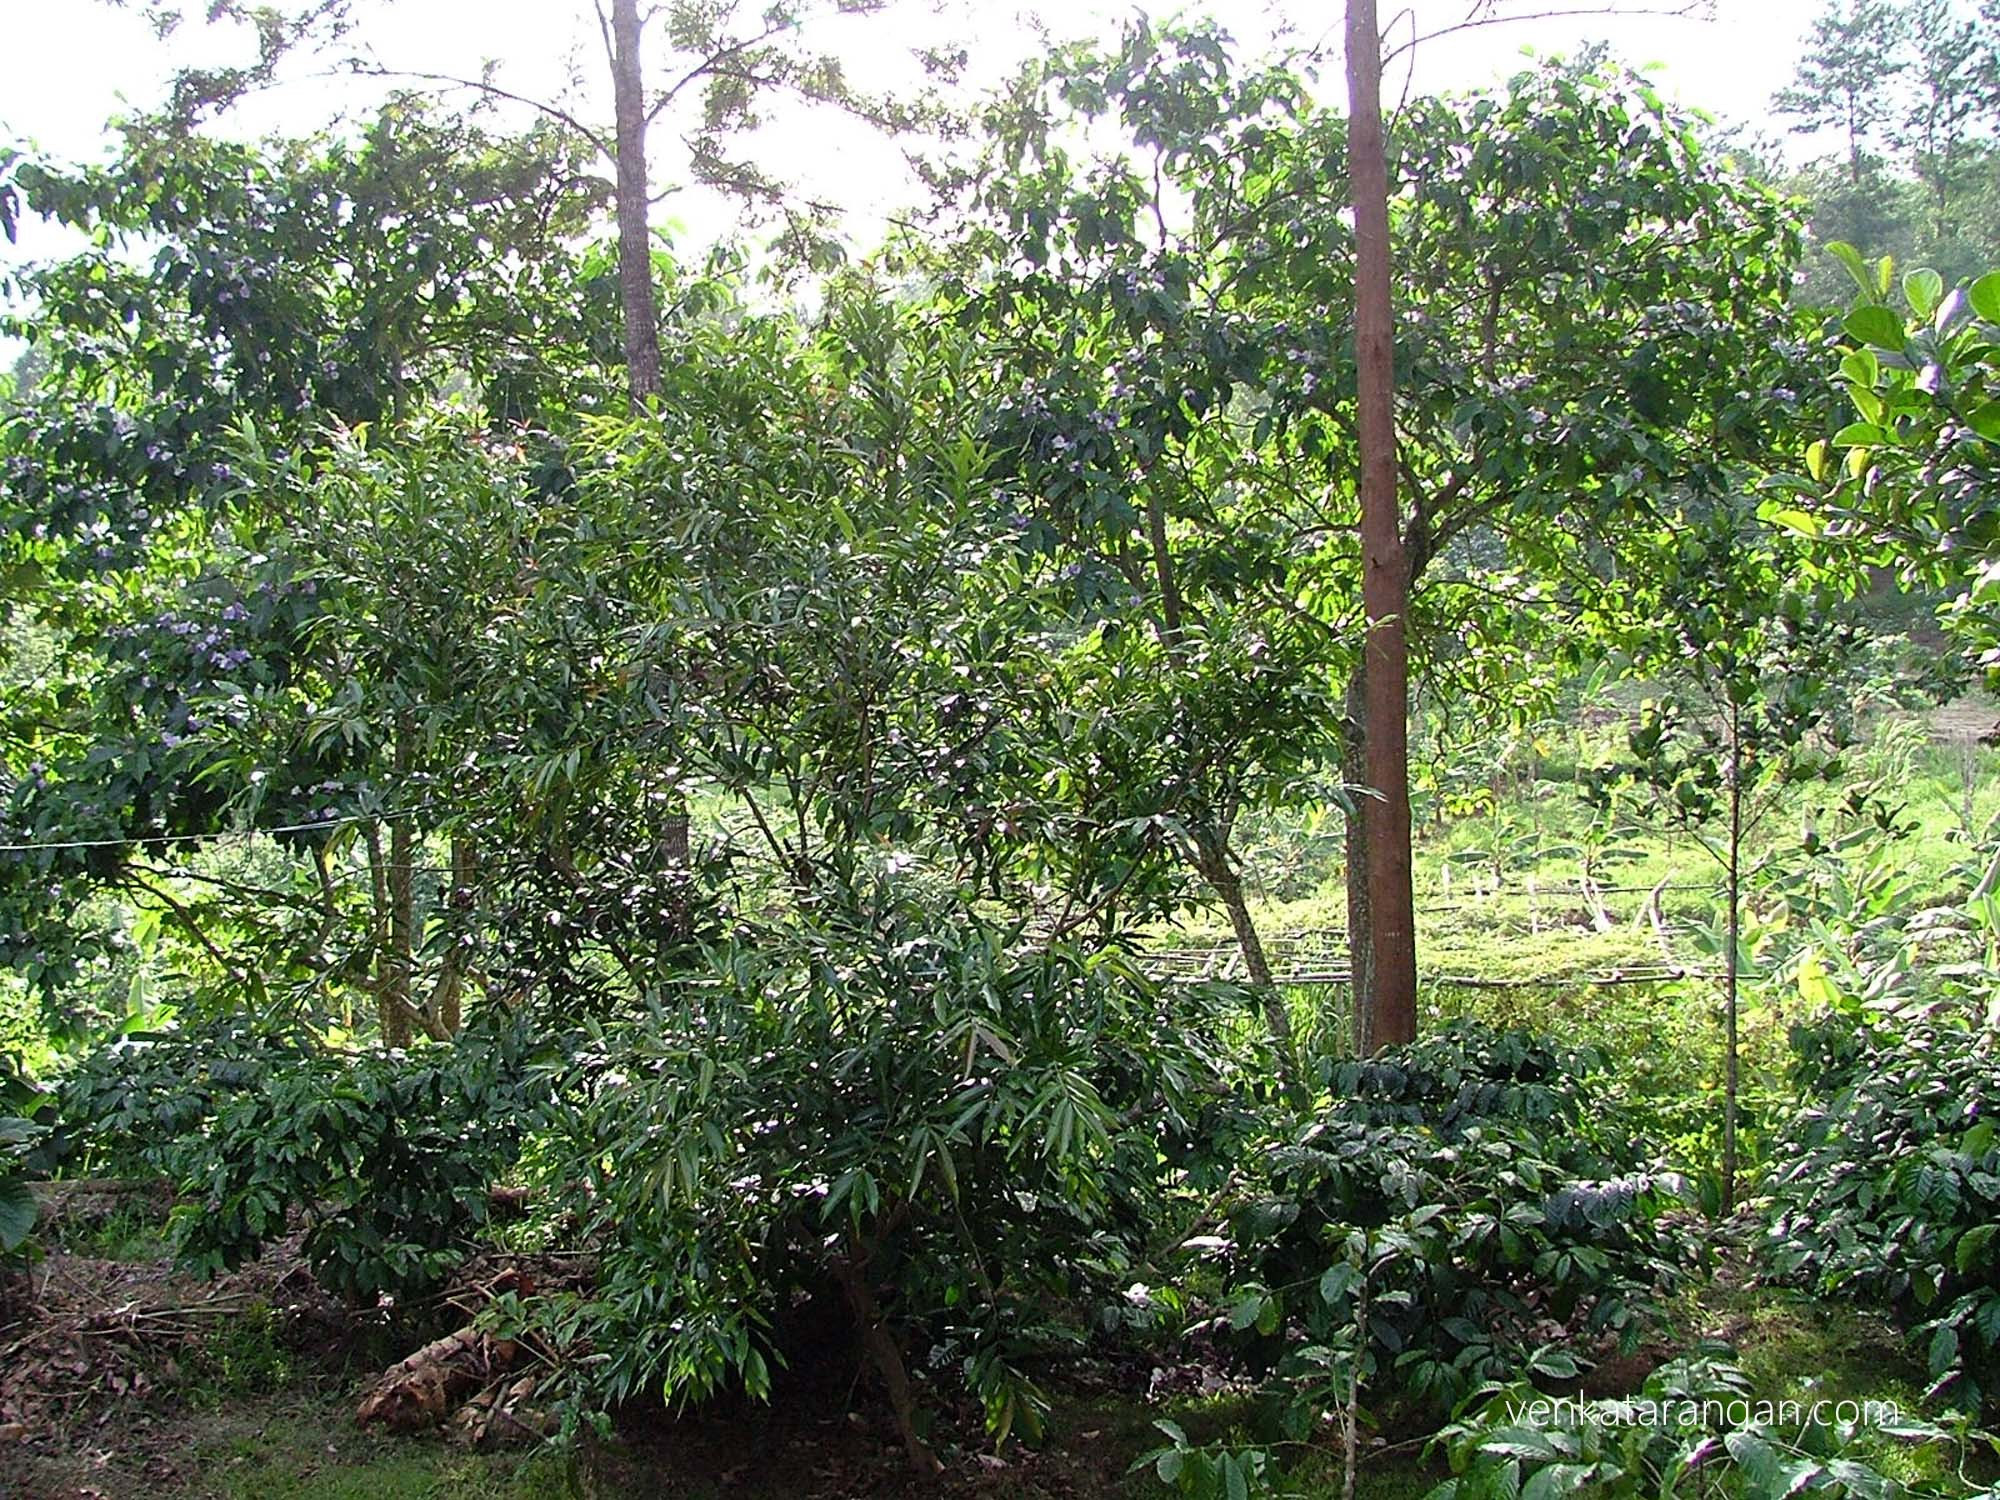 The resort is situated inside an estate growing various vegetables and fruits